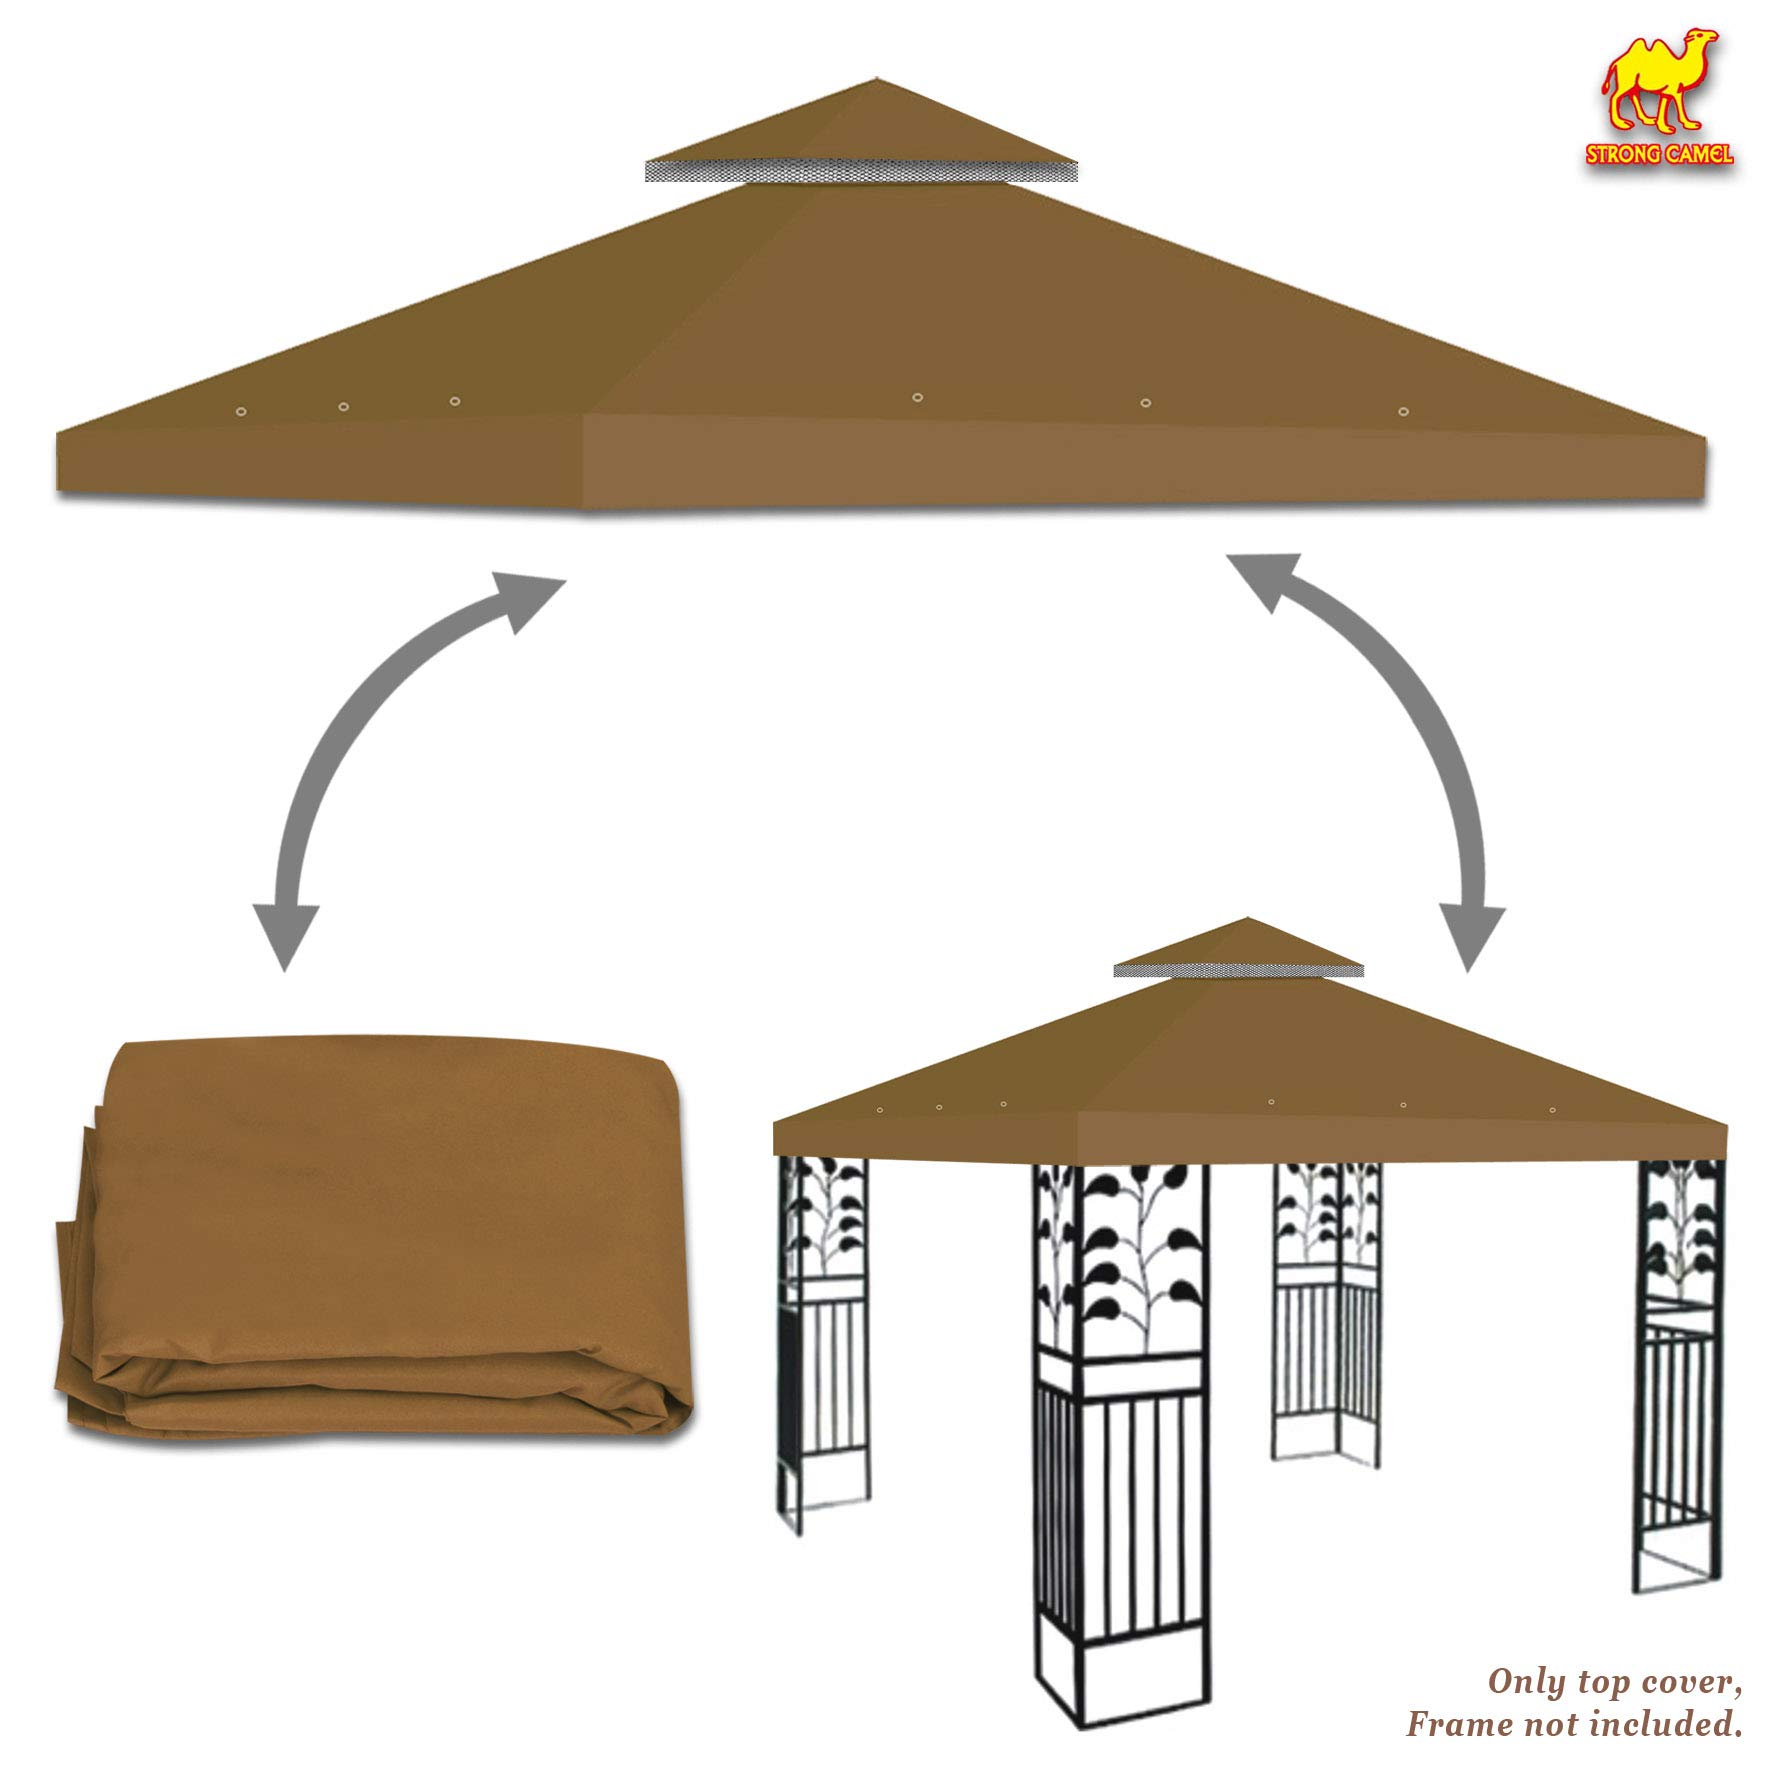 Strong Camel Dual Tier Gazebo Replacement 10' x 10' Canopy Top Cover Awning Roof Top Cover (Tan) (Brown)